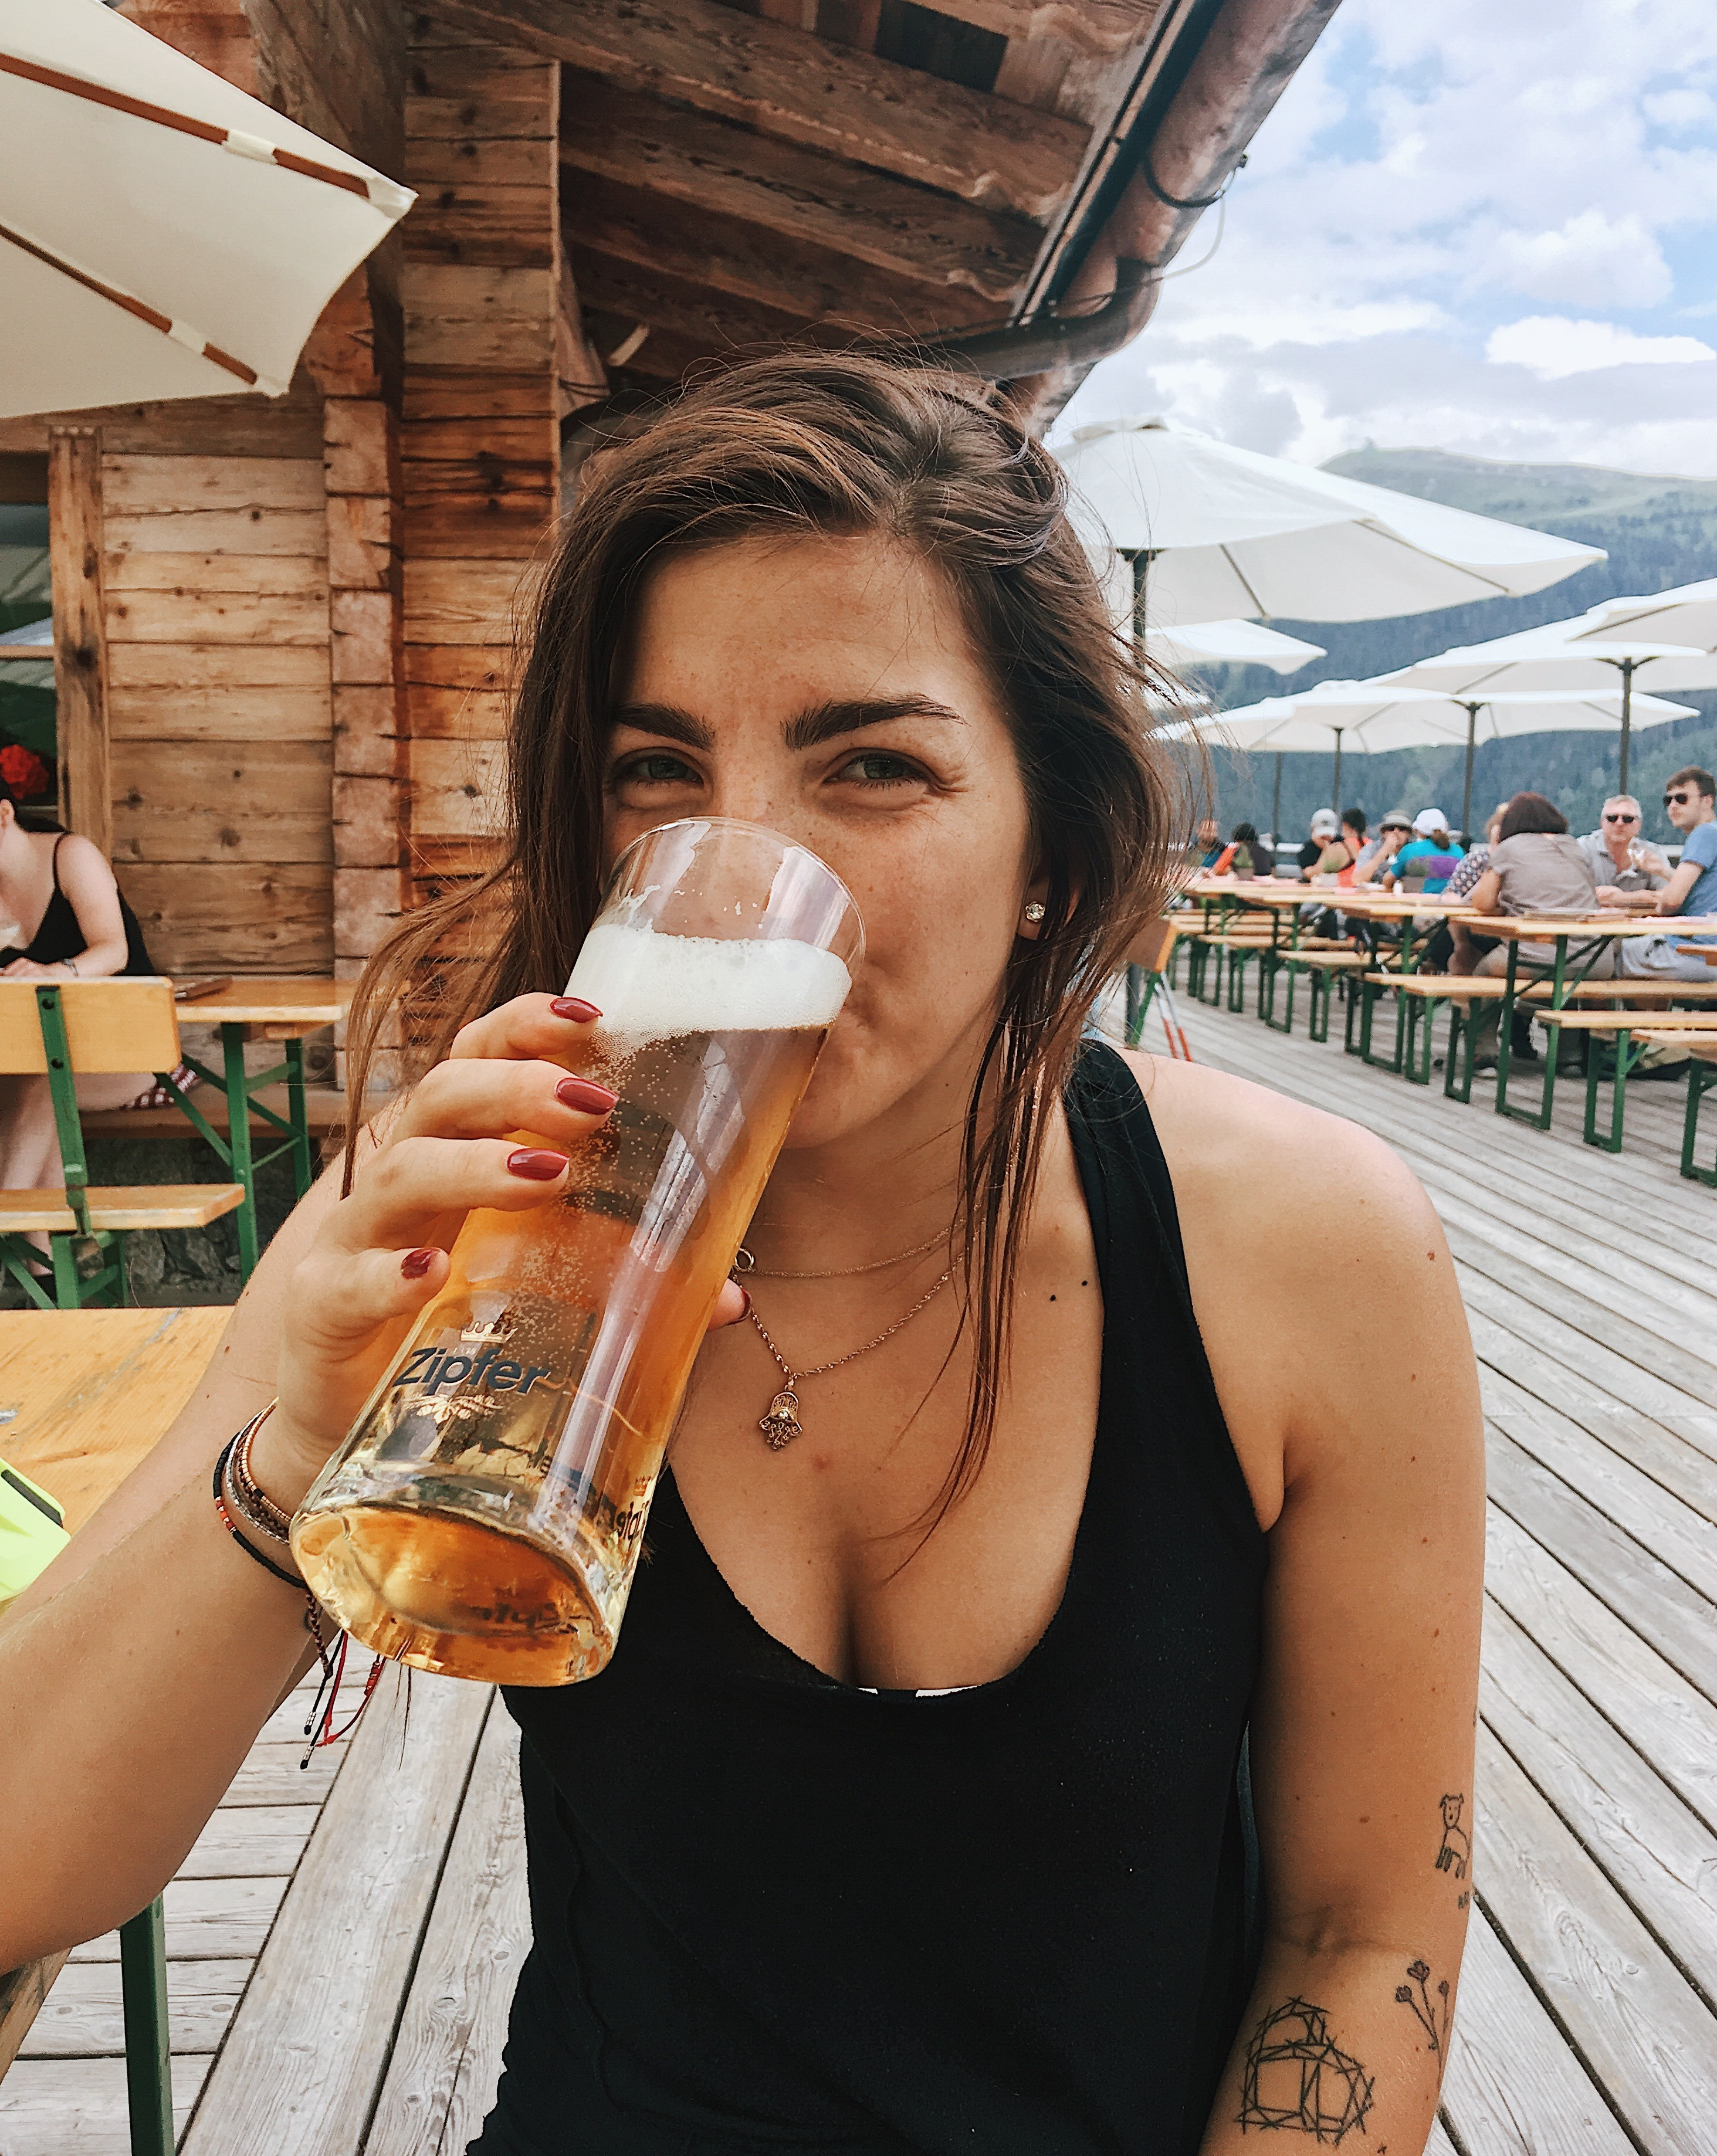 Beer in Austria